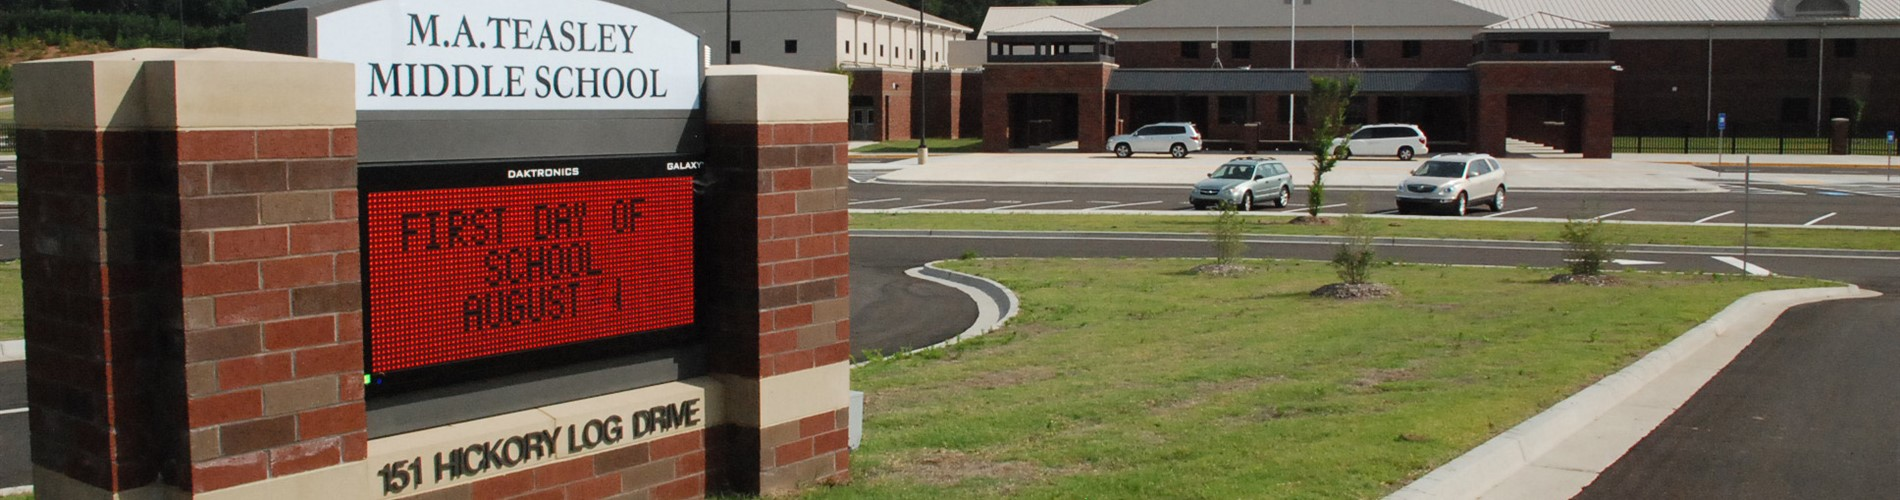 Teasley Middle School sign with first day of school as August 1